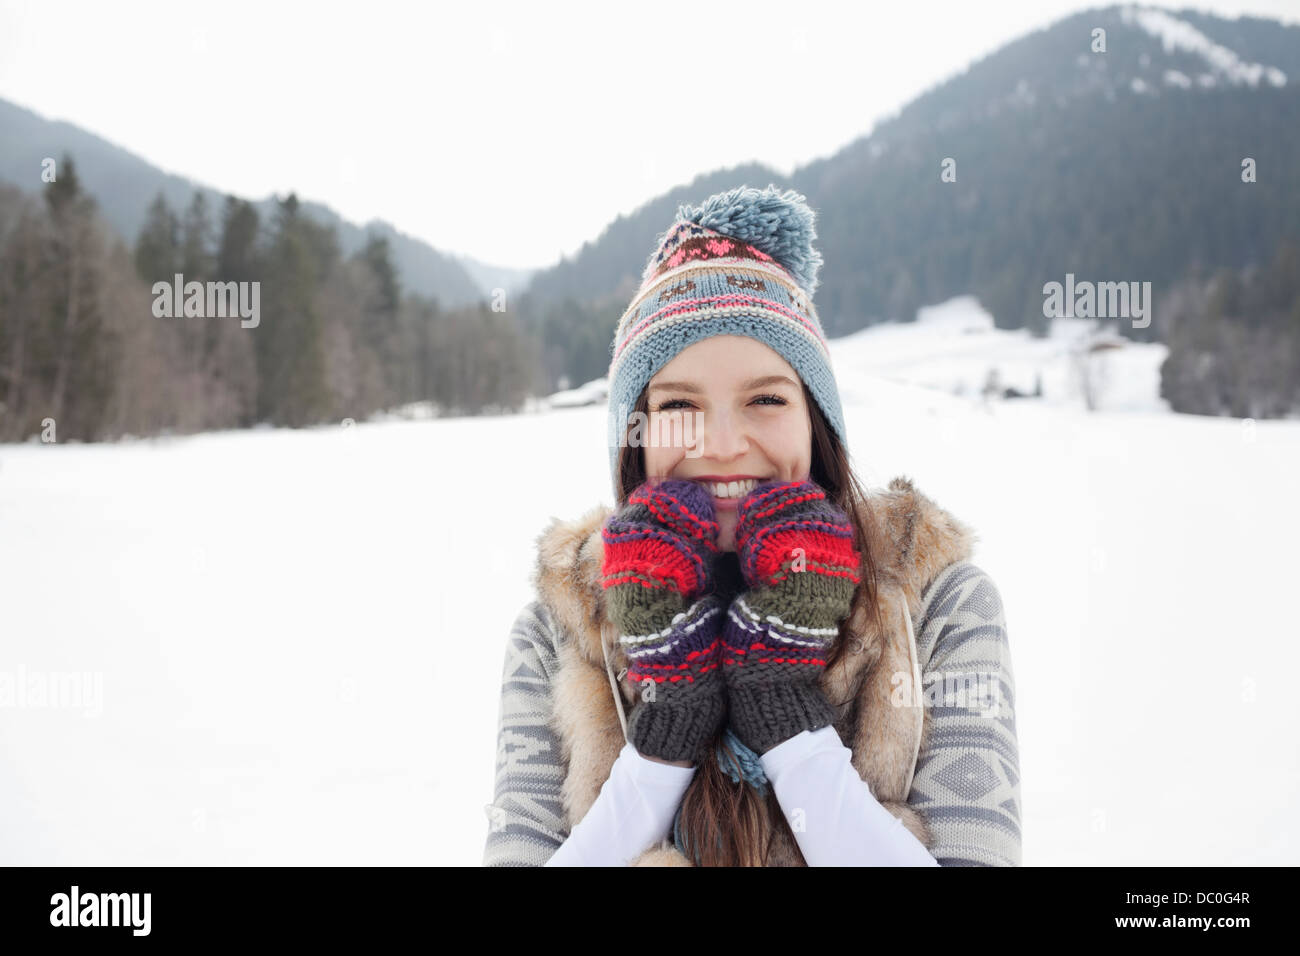 Portrait of enthusiastic woman wearing knit hat and gloves in snowy field - Stock Image